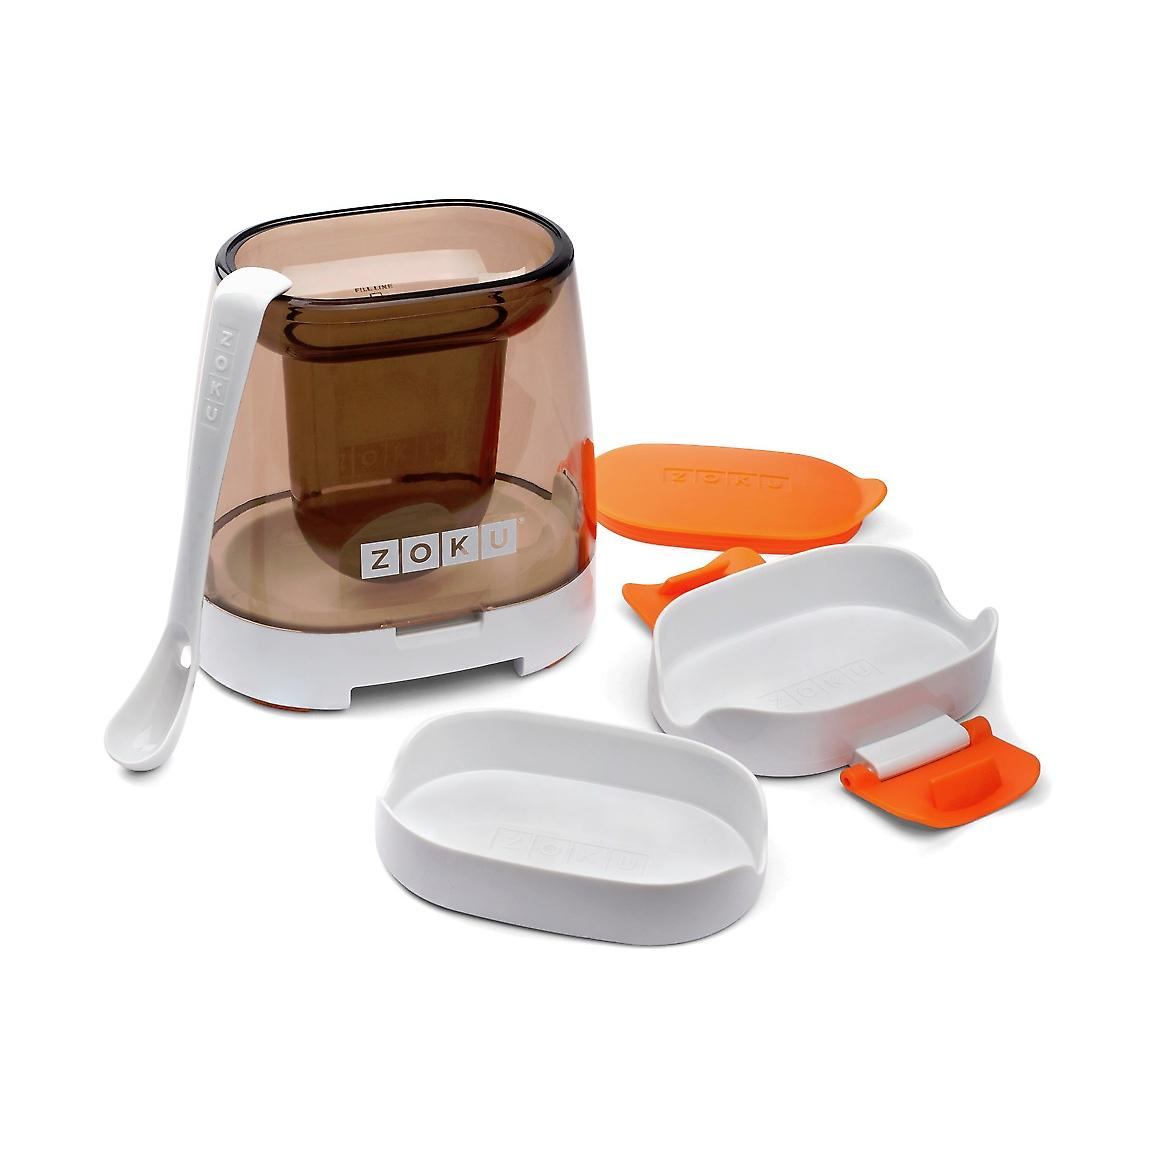 Zoku Chocolate dipping Station for Quick pops - non toxic BPA free plastic